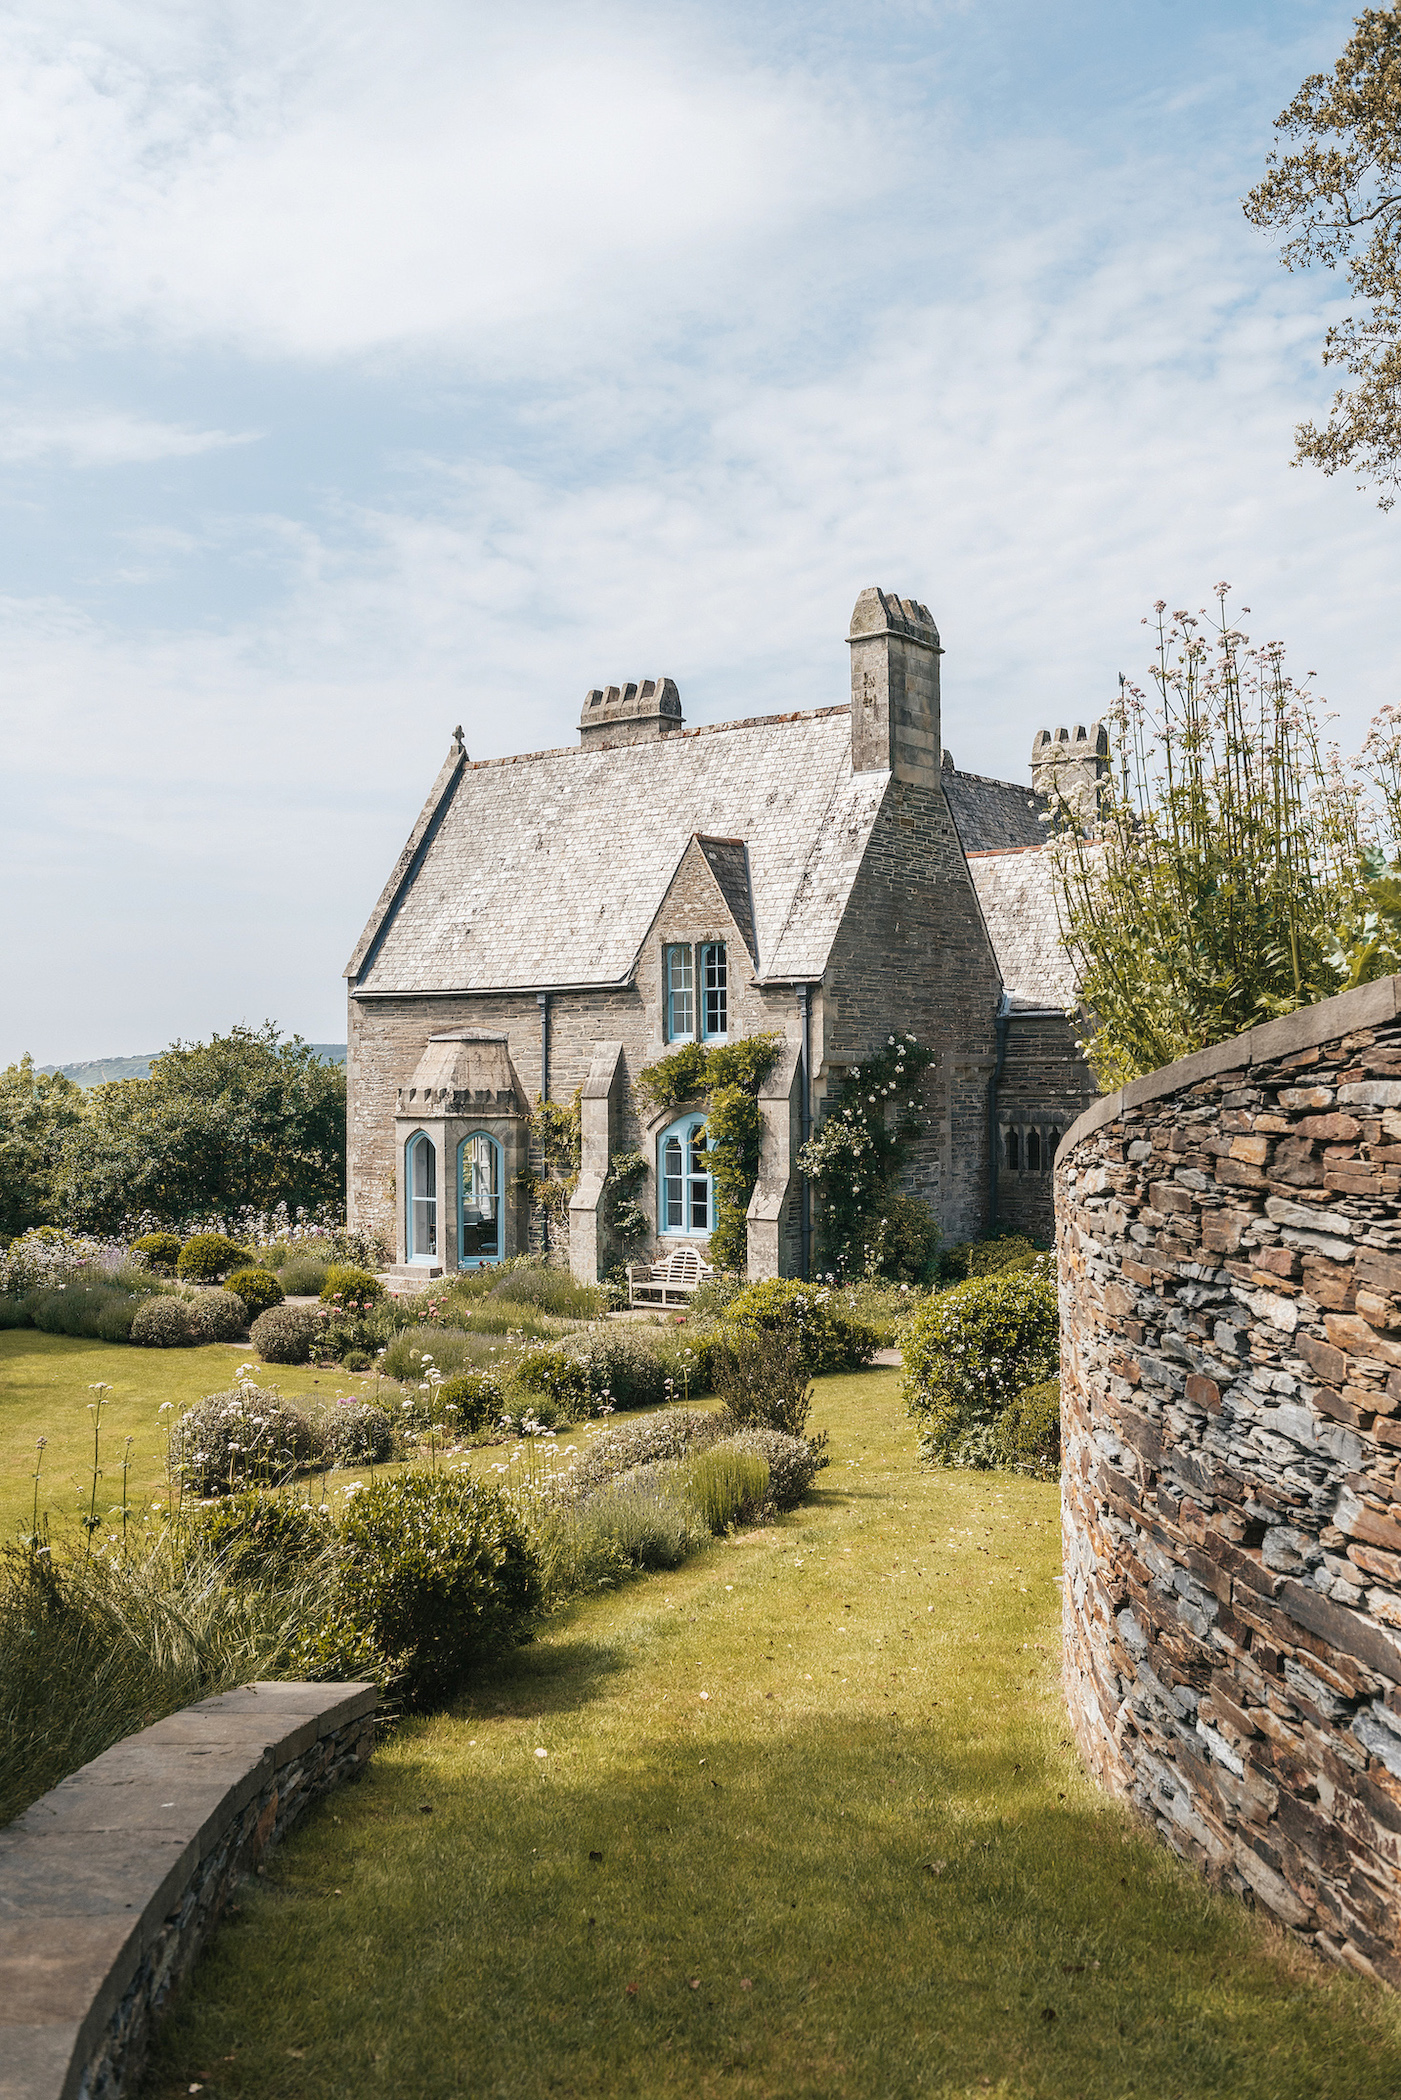 Quirky Places To Stay In Cornwall | Unique Home Stays